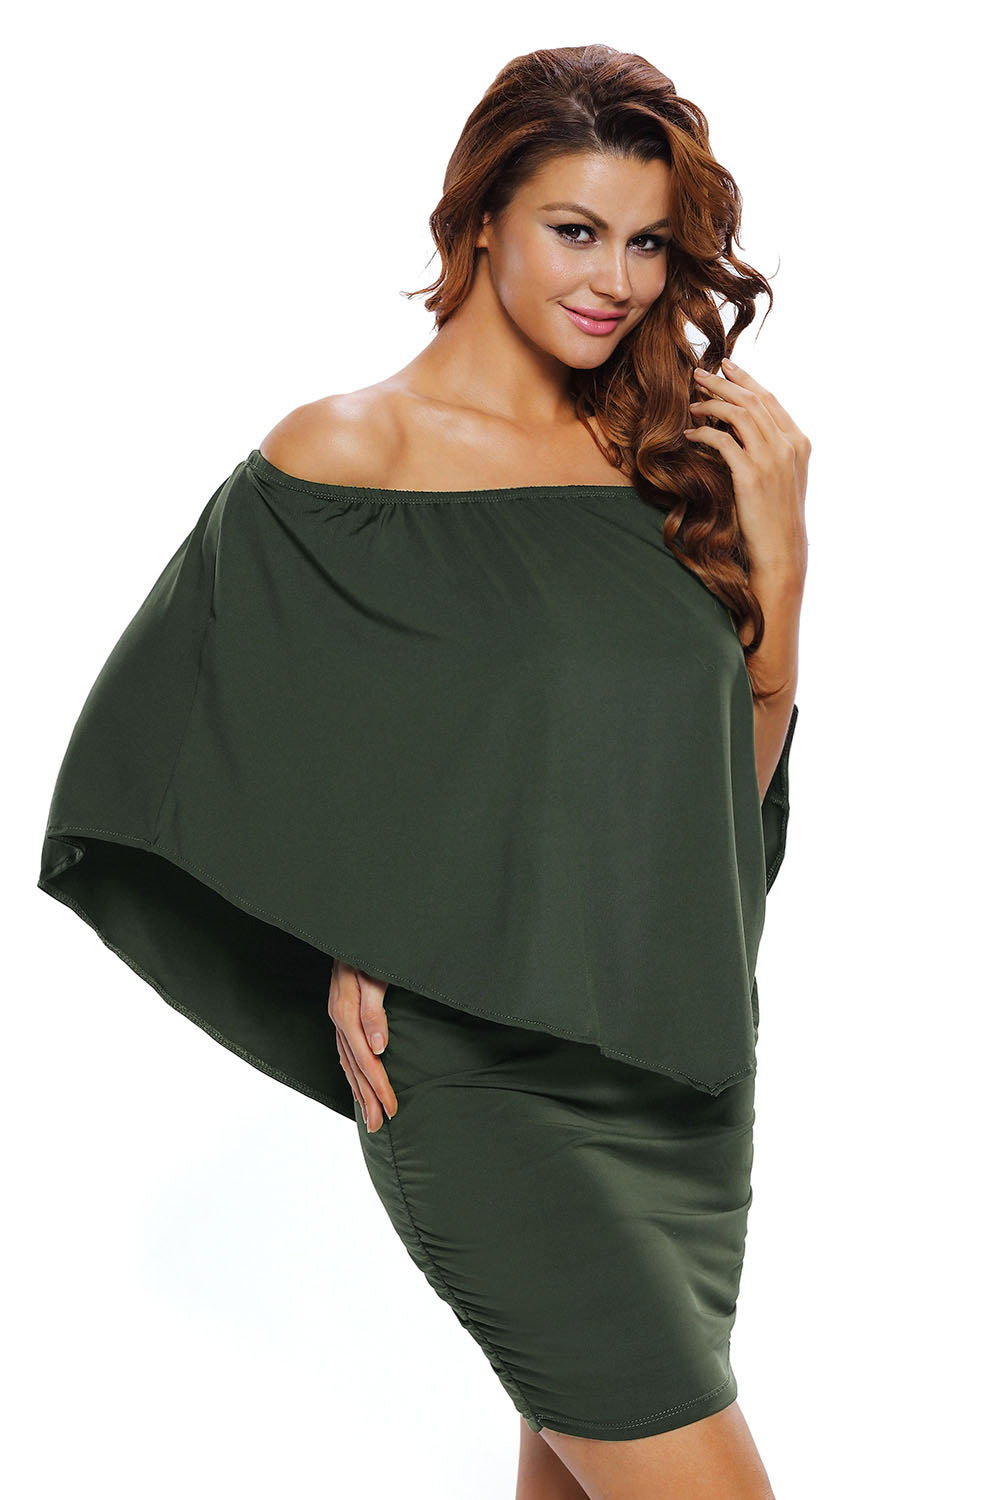 Multiple Dressing Layered Army Green Mini Poncho Dress - JT's Designer Fashion